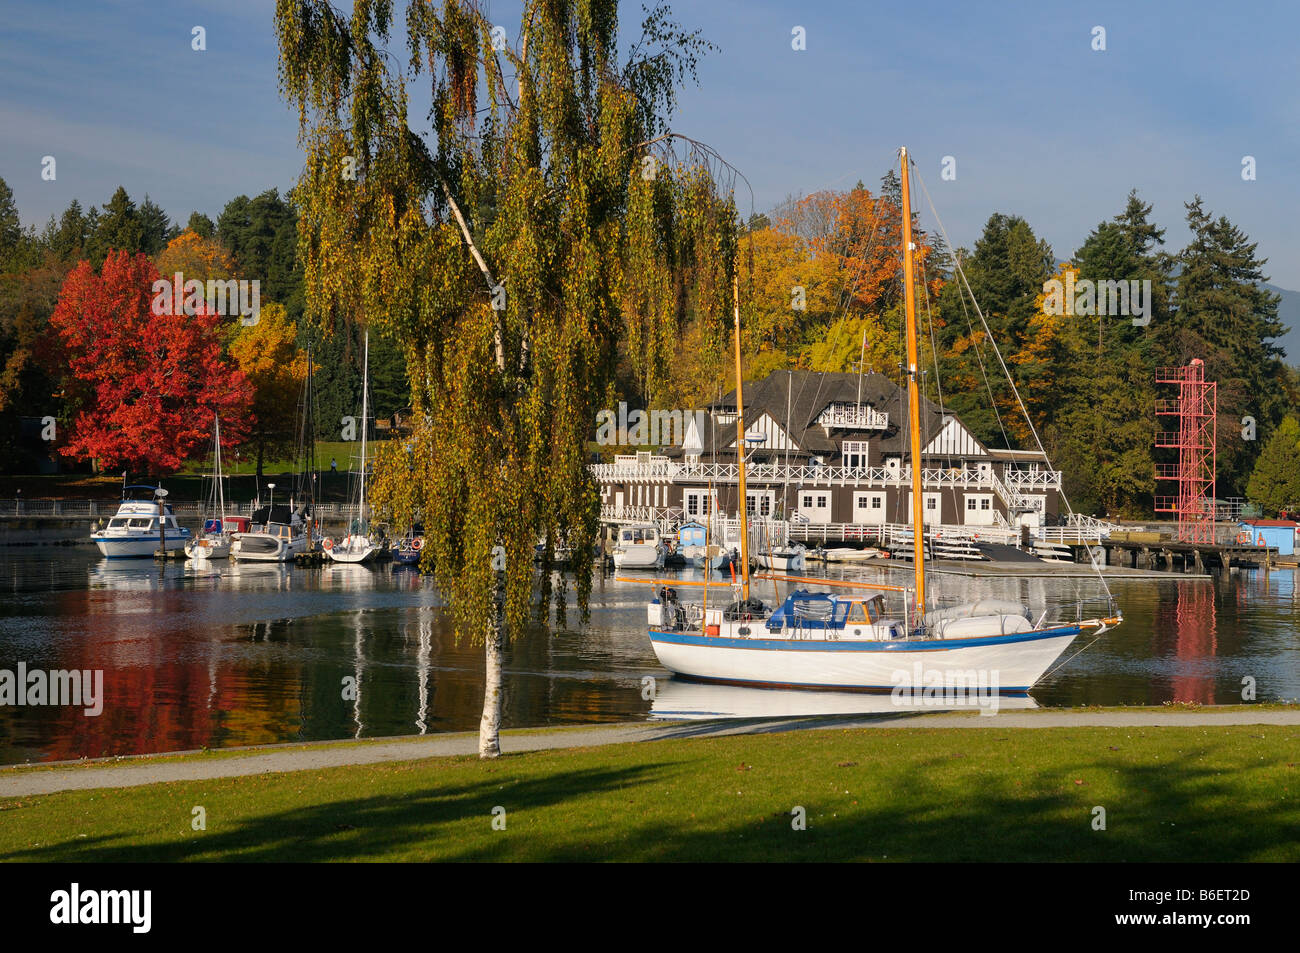 Sailboat cruising out of Coal Harbour at the Vancouver Rowing club in Autumn - Stock Image